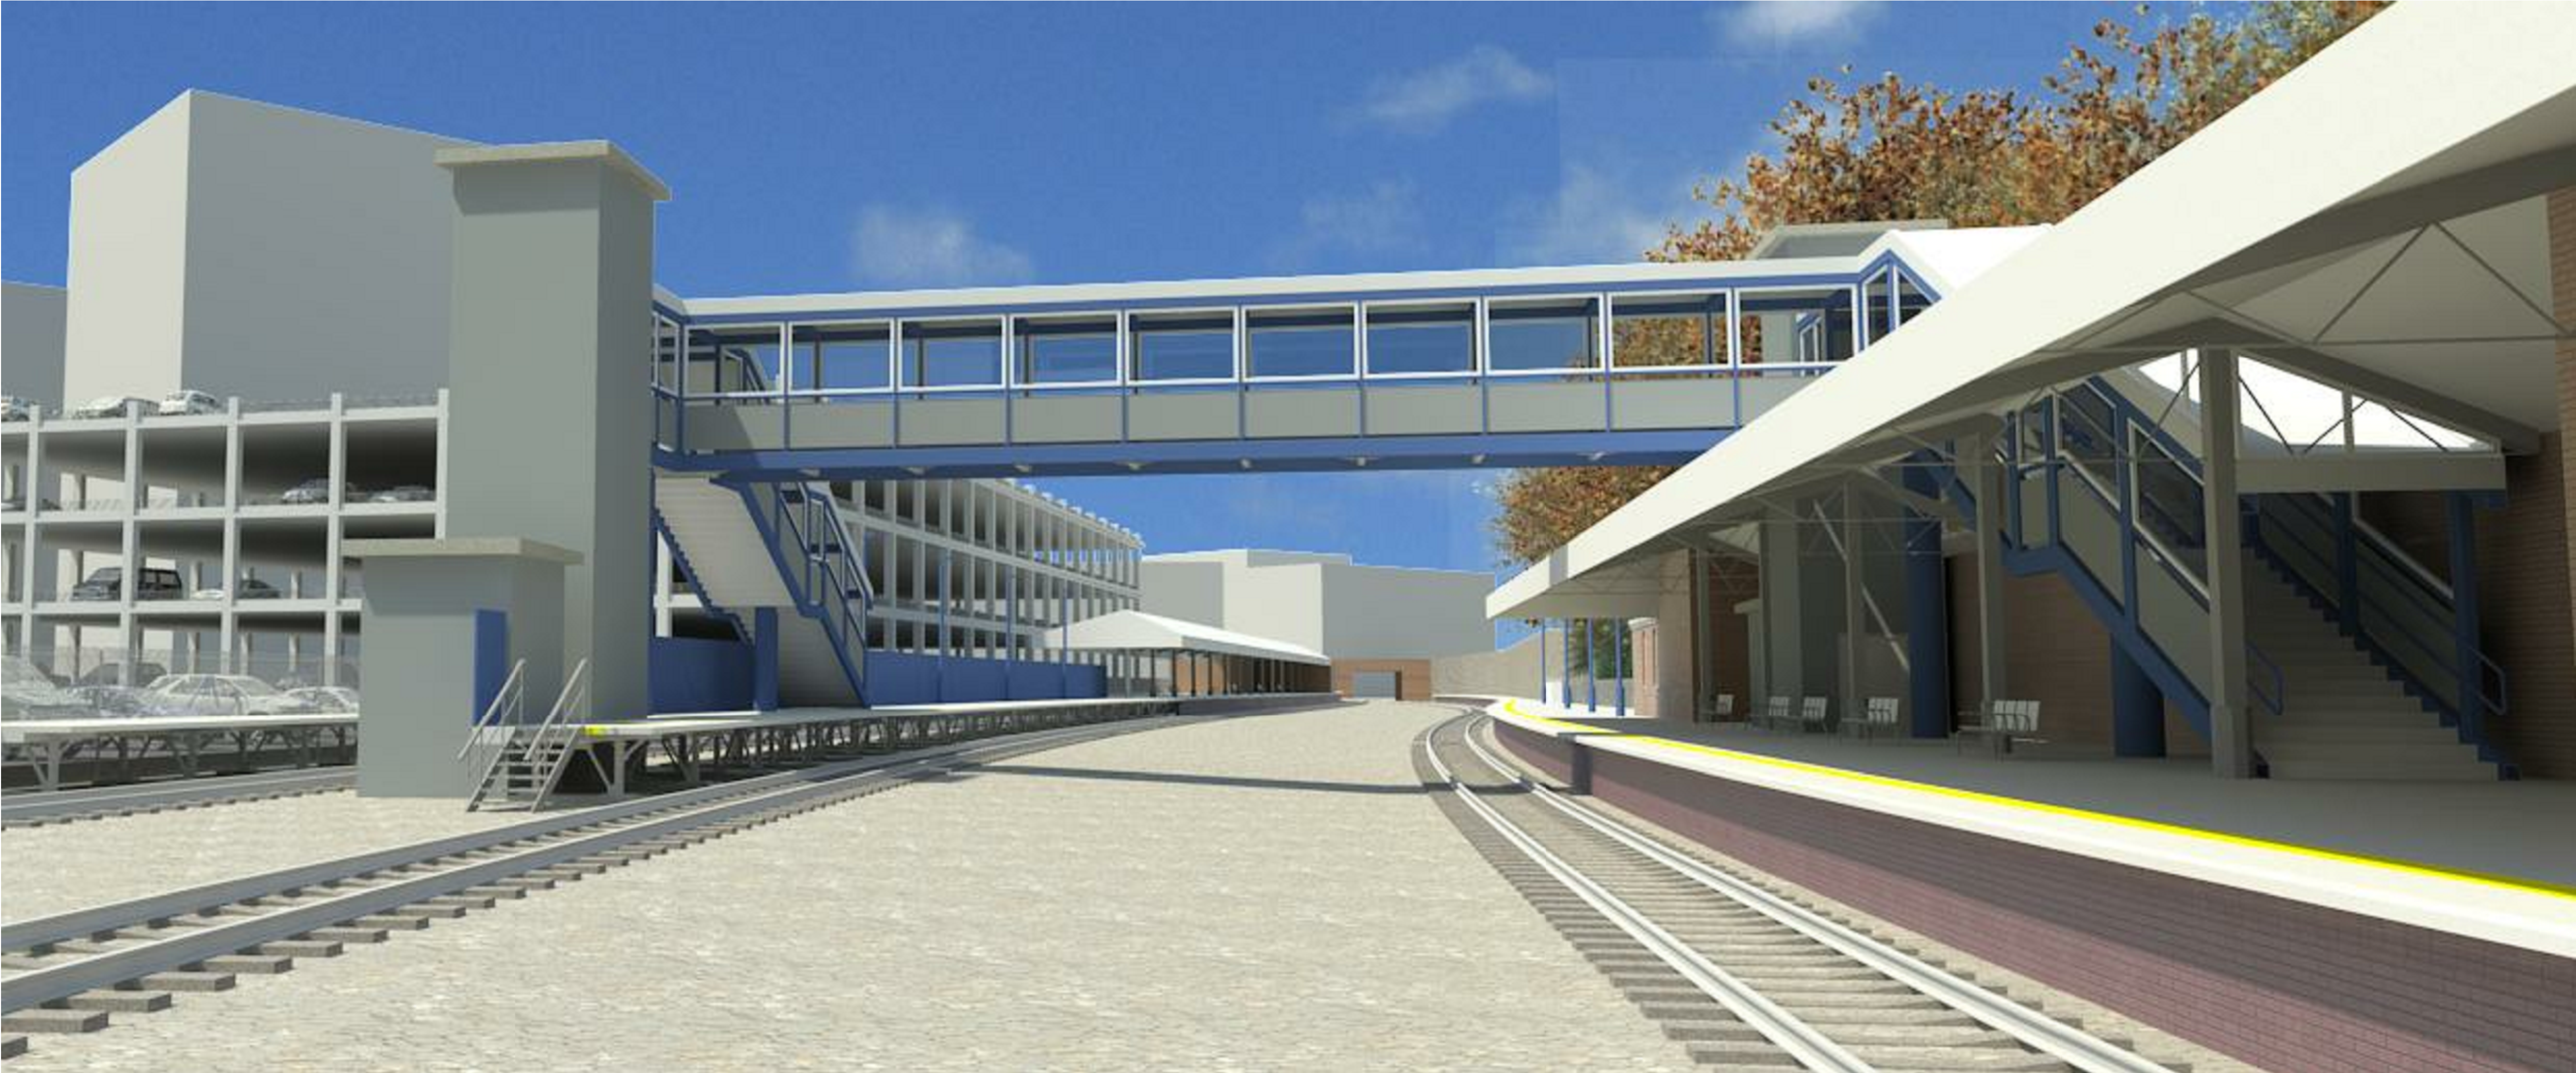 High Wycombe station set for £4 million upgrade